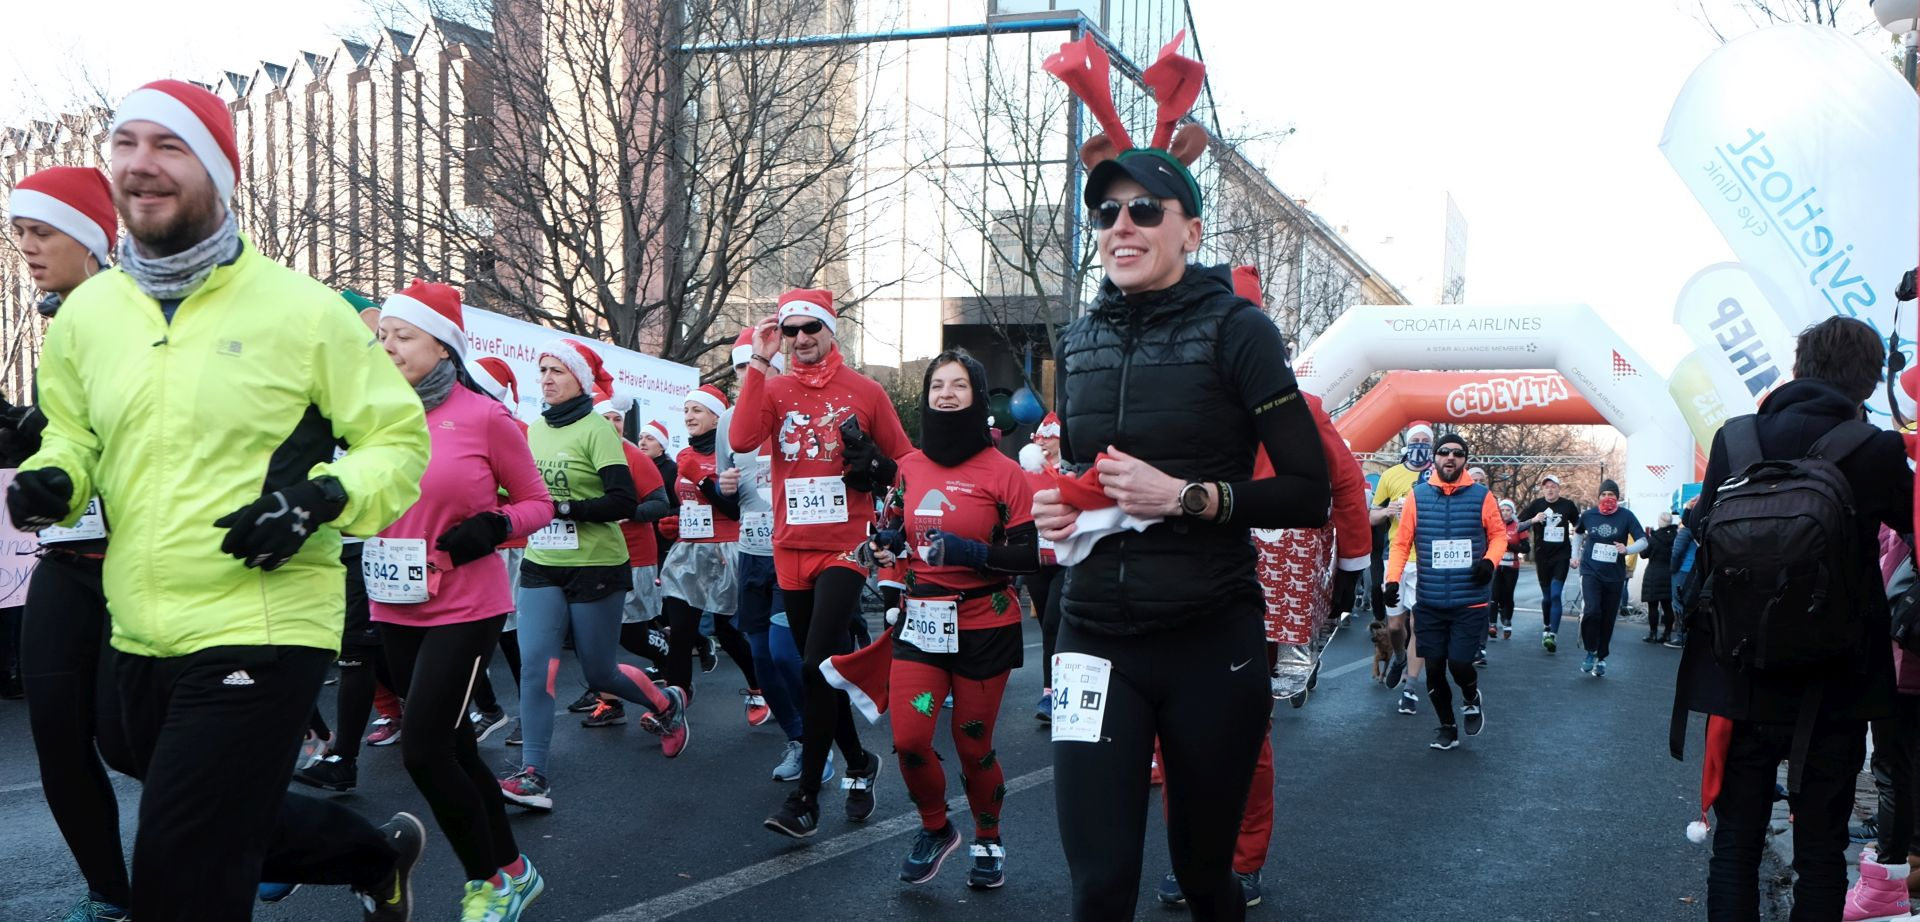 VIDEO: HUMANITARNI ZAGREB ADVENT RUN Više od 1300 kostimiranih radosnih trkača